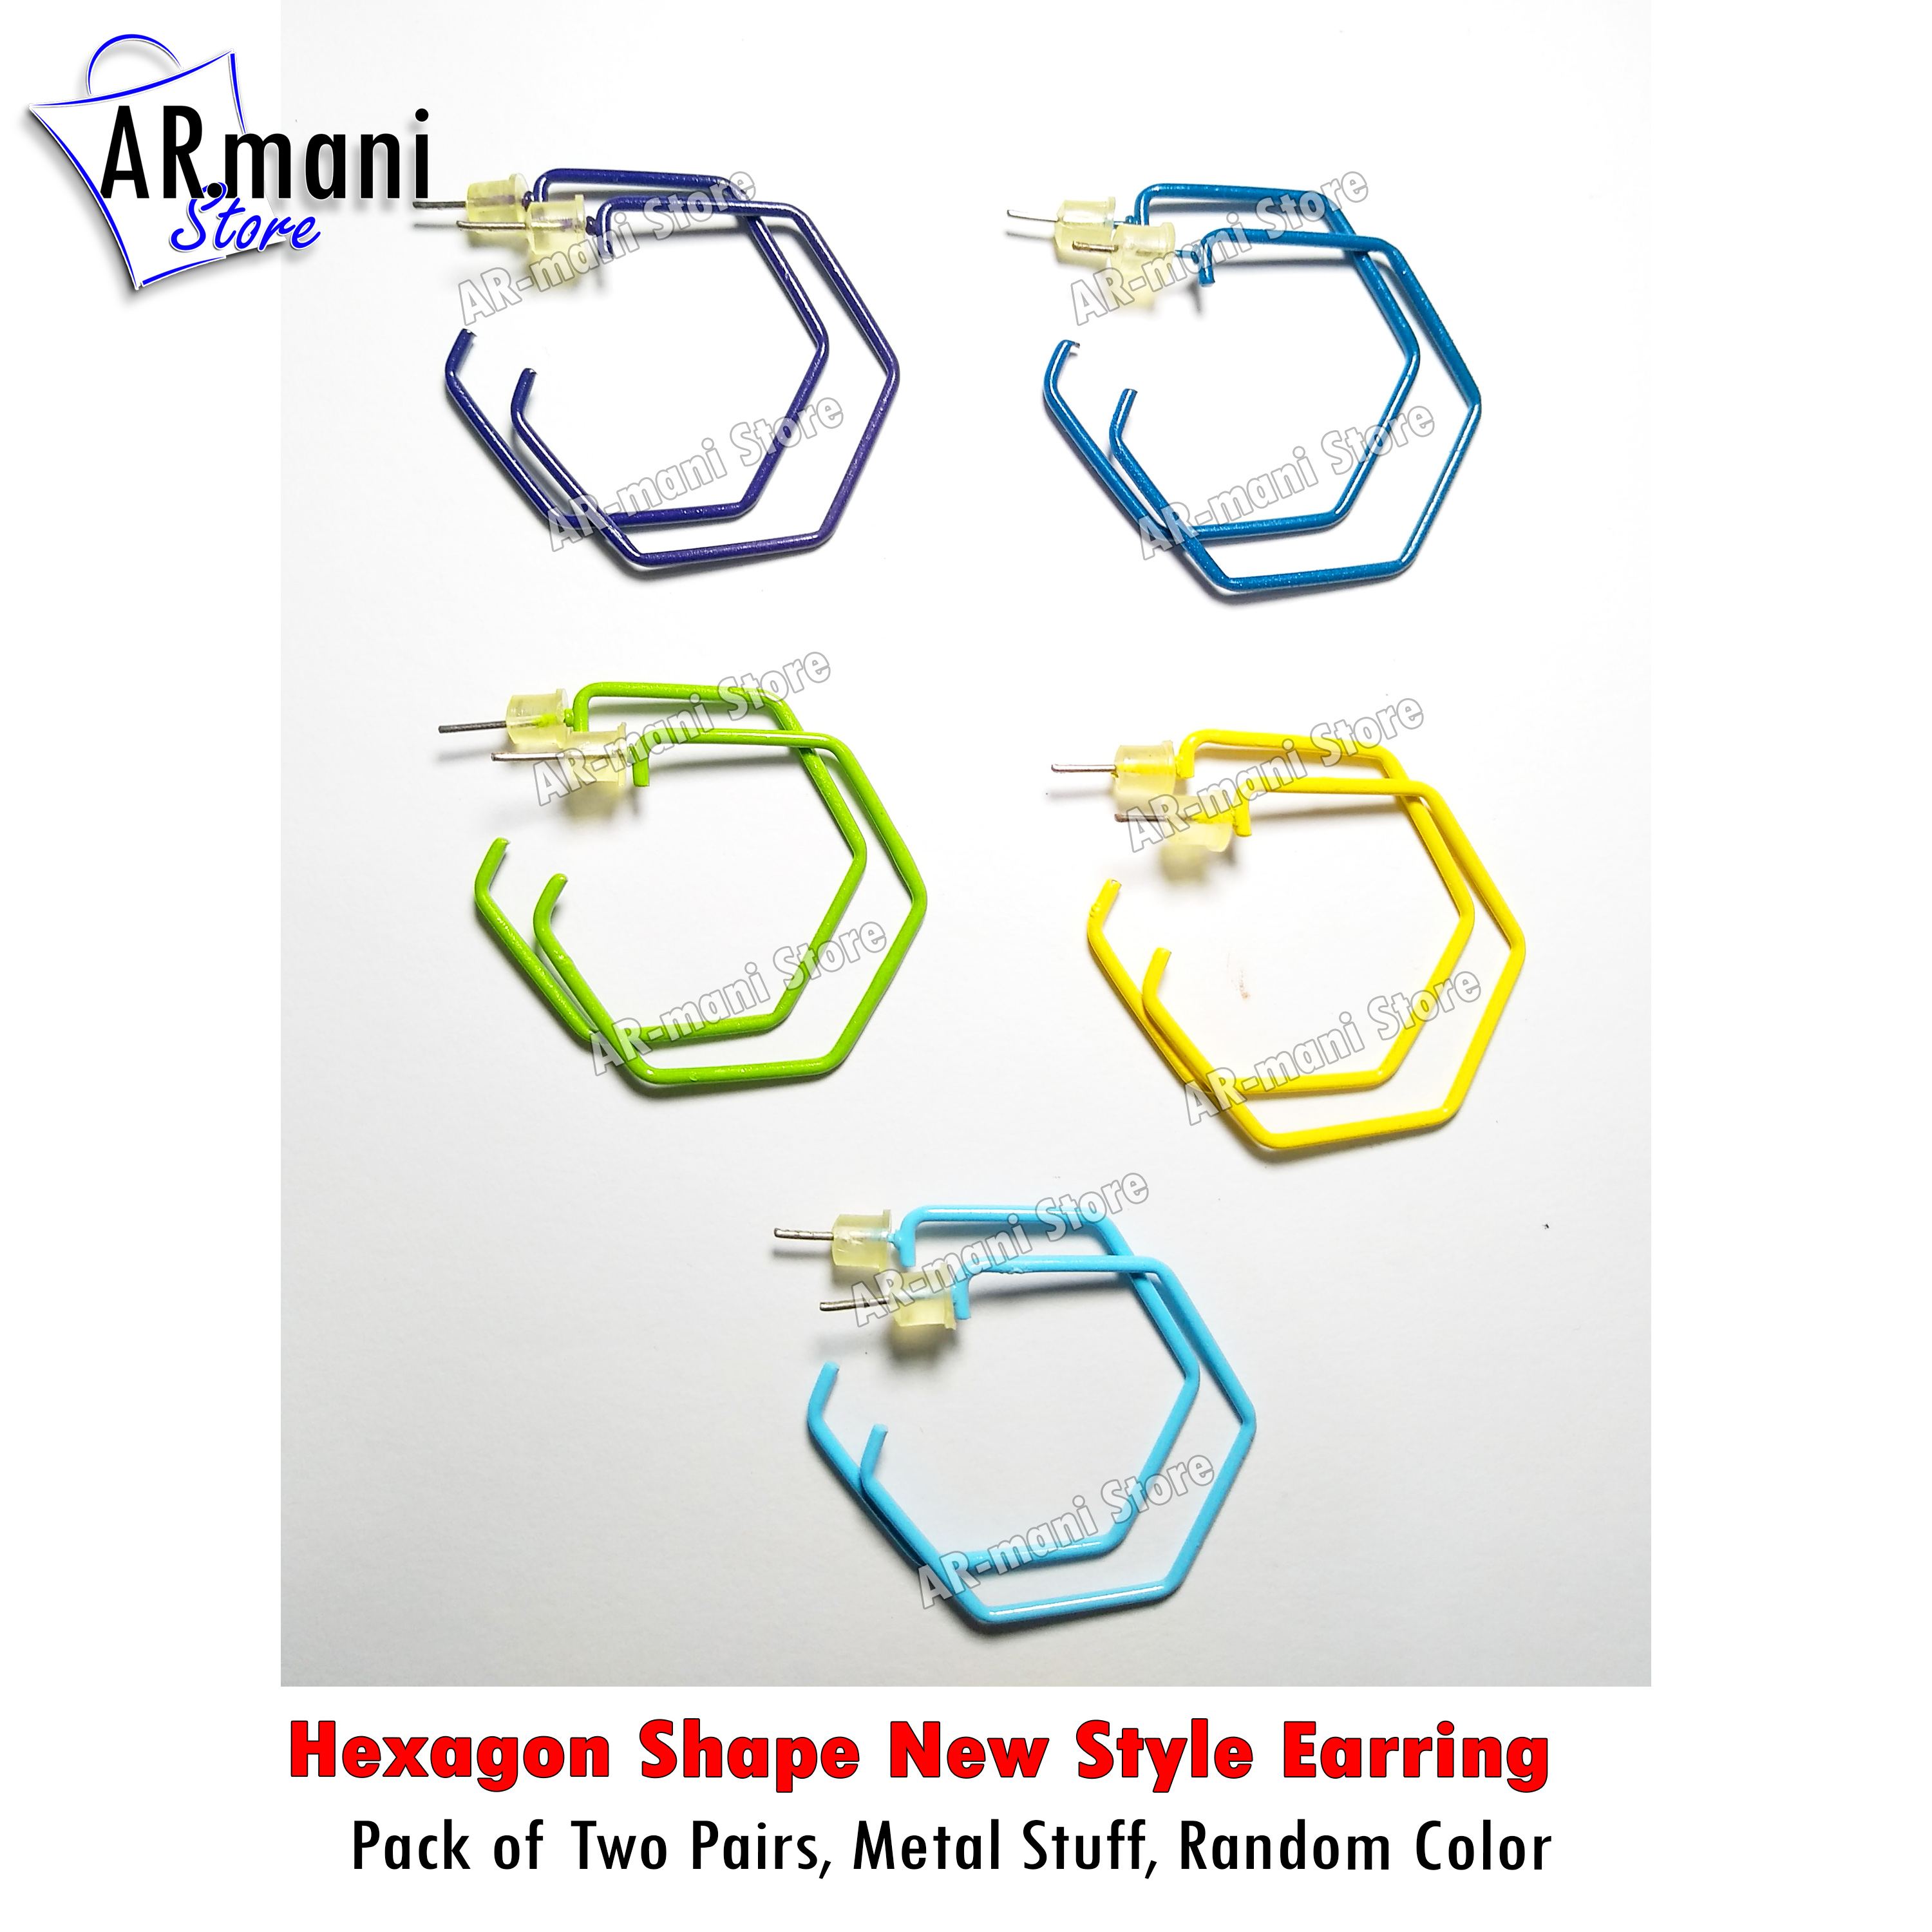 New Hexagon Shape Style earring tops set 2 pairs for girls fashion ear rings tops studs